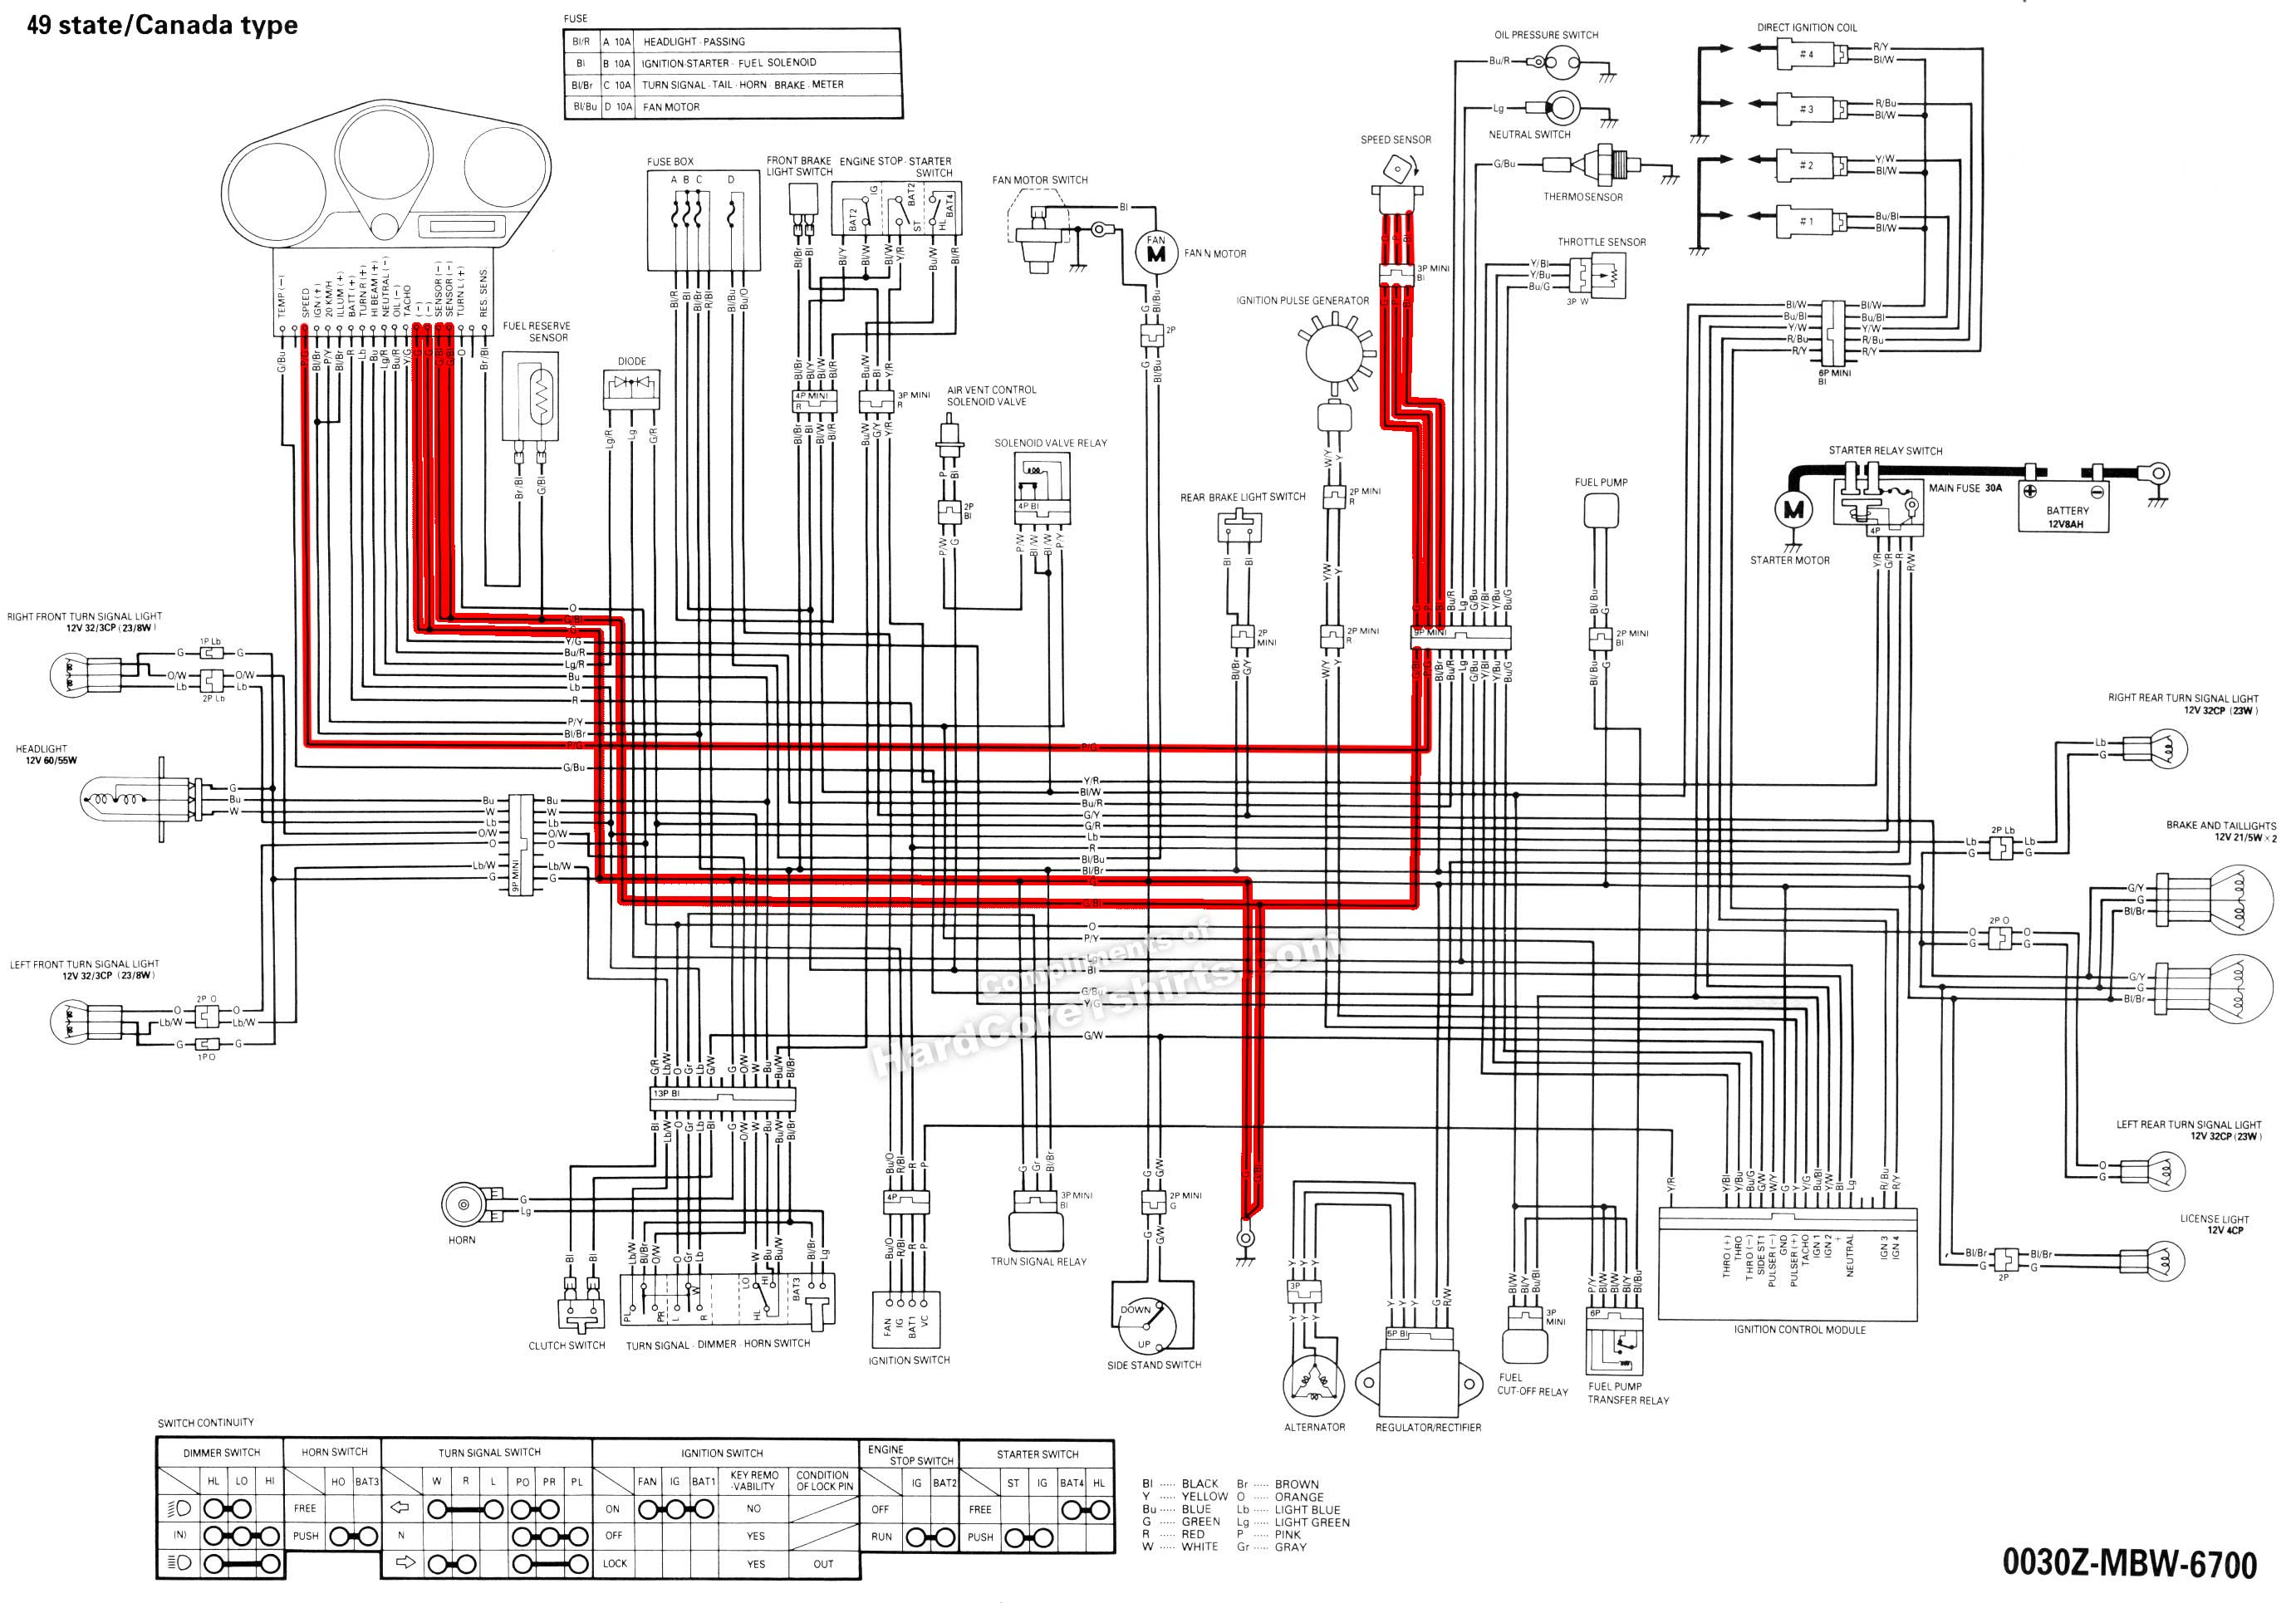 06 vt1100 wiring diagram